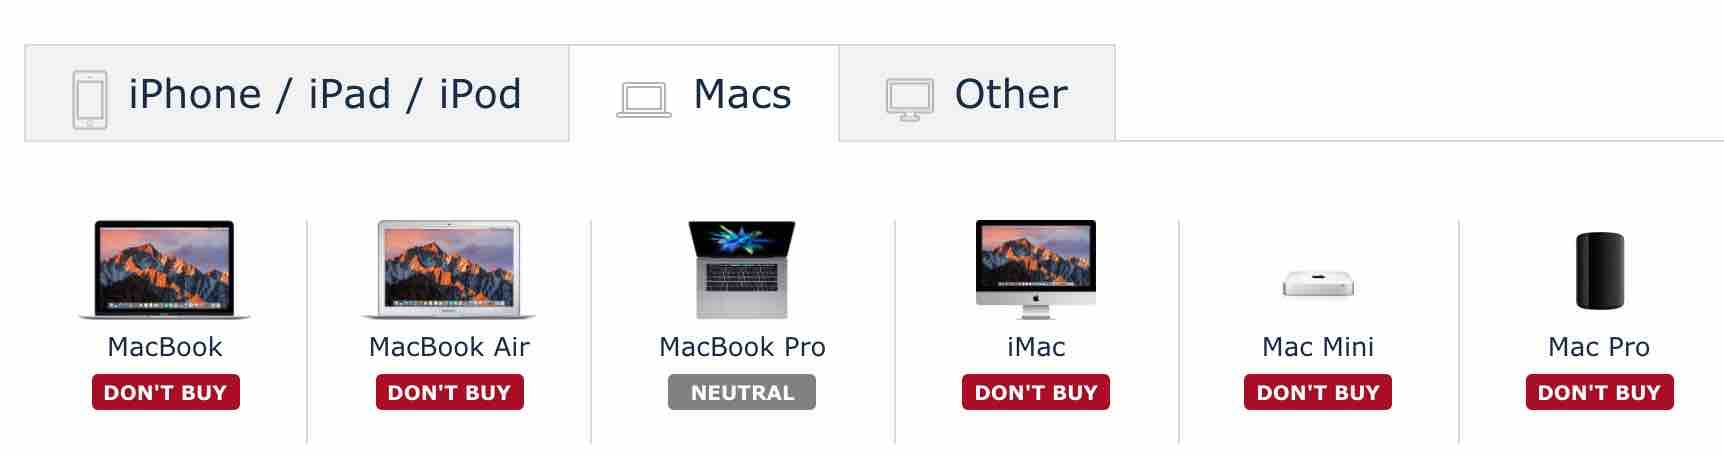 not just the mac pro rh lapcatsoftware com Mac Pro Mac Mini Keyboard